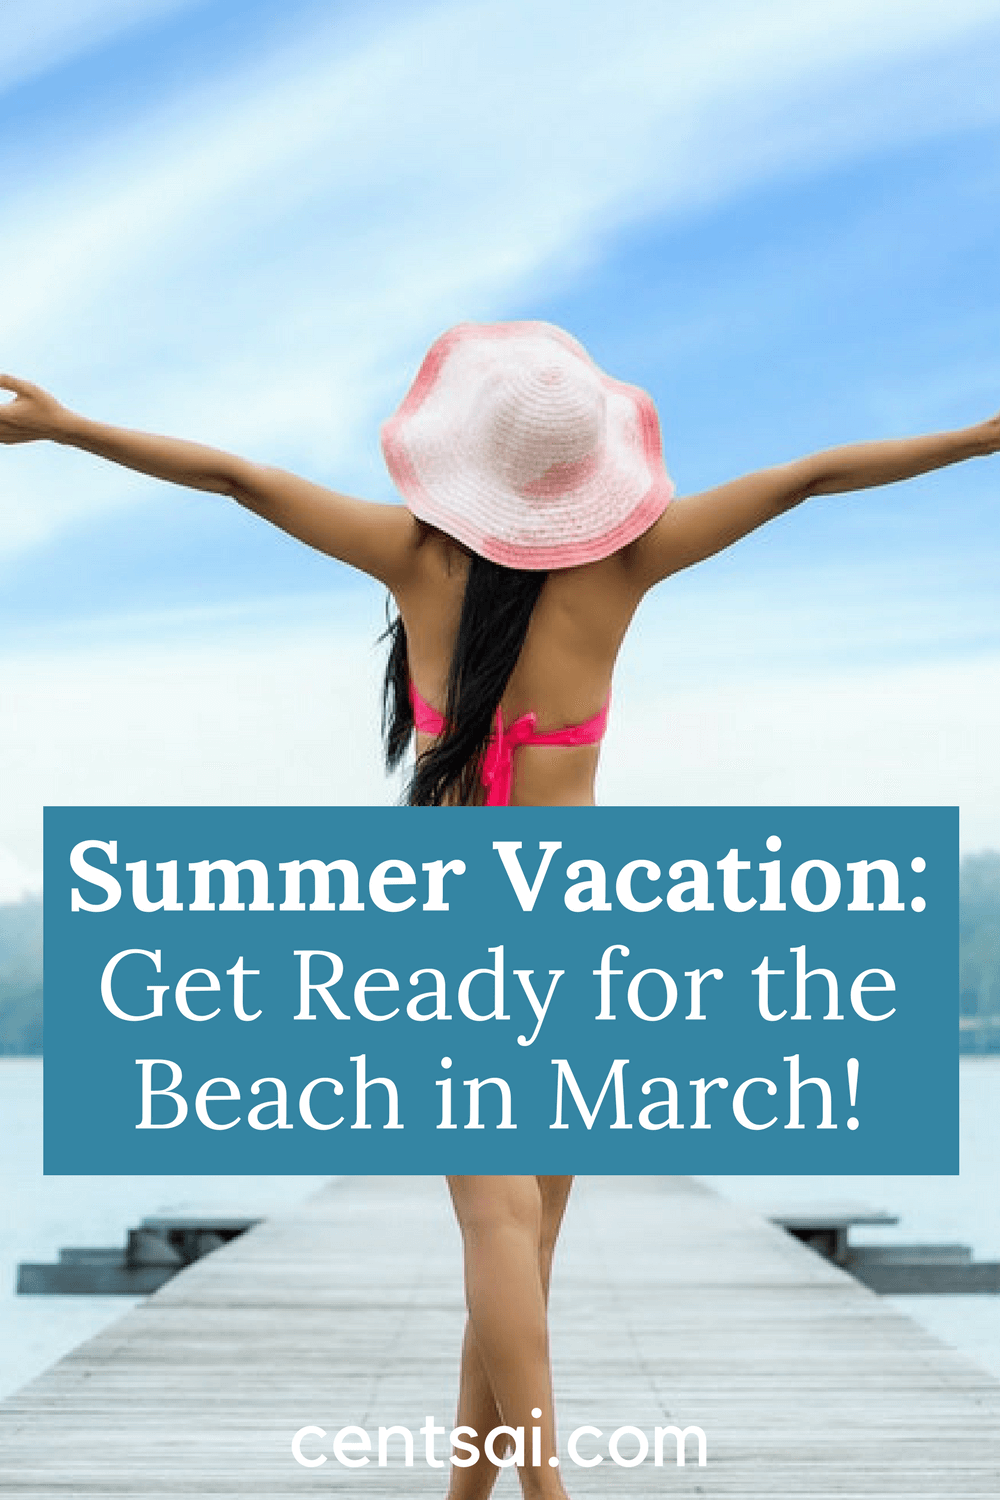 Summer Vacation Get Ready for the Beach in March